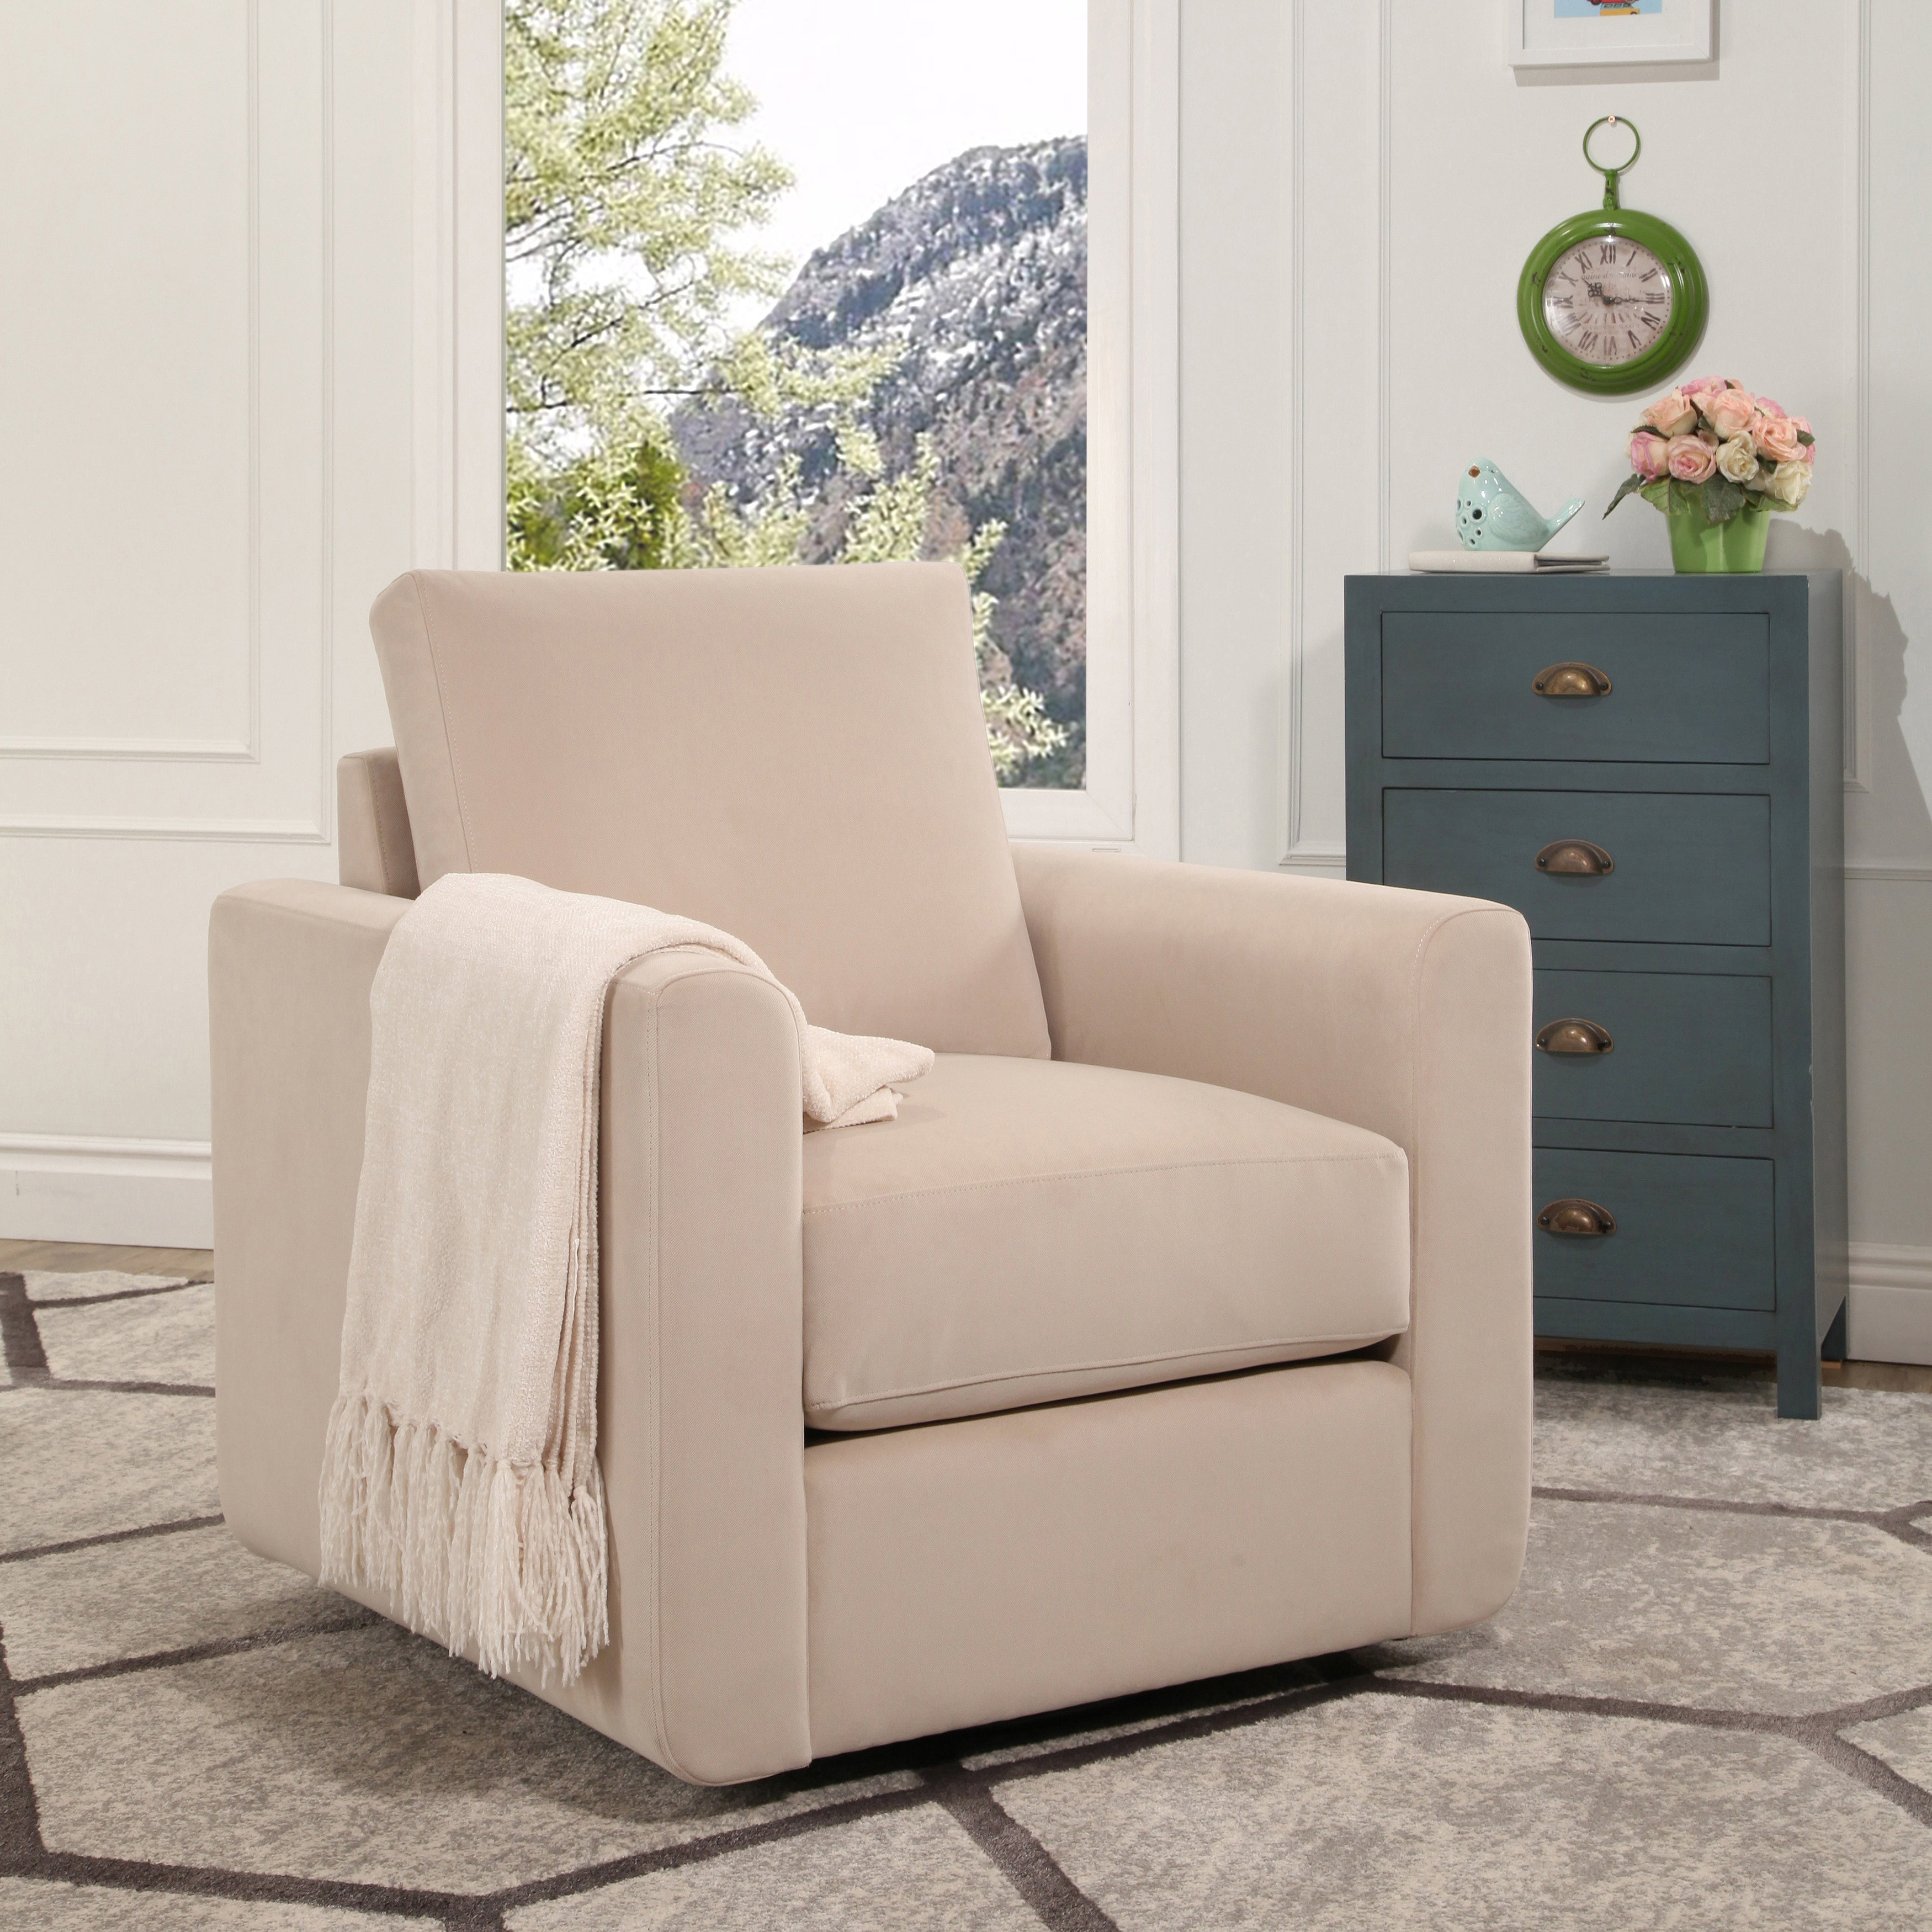 Abbyson Anthony Fabric Swivel Chair (2 Options Available)